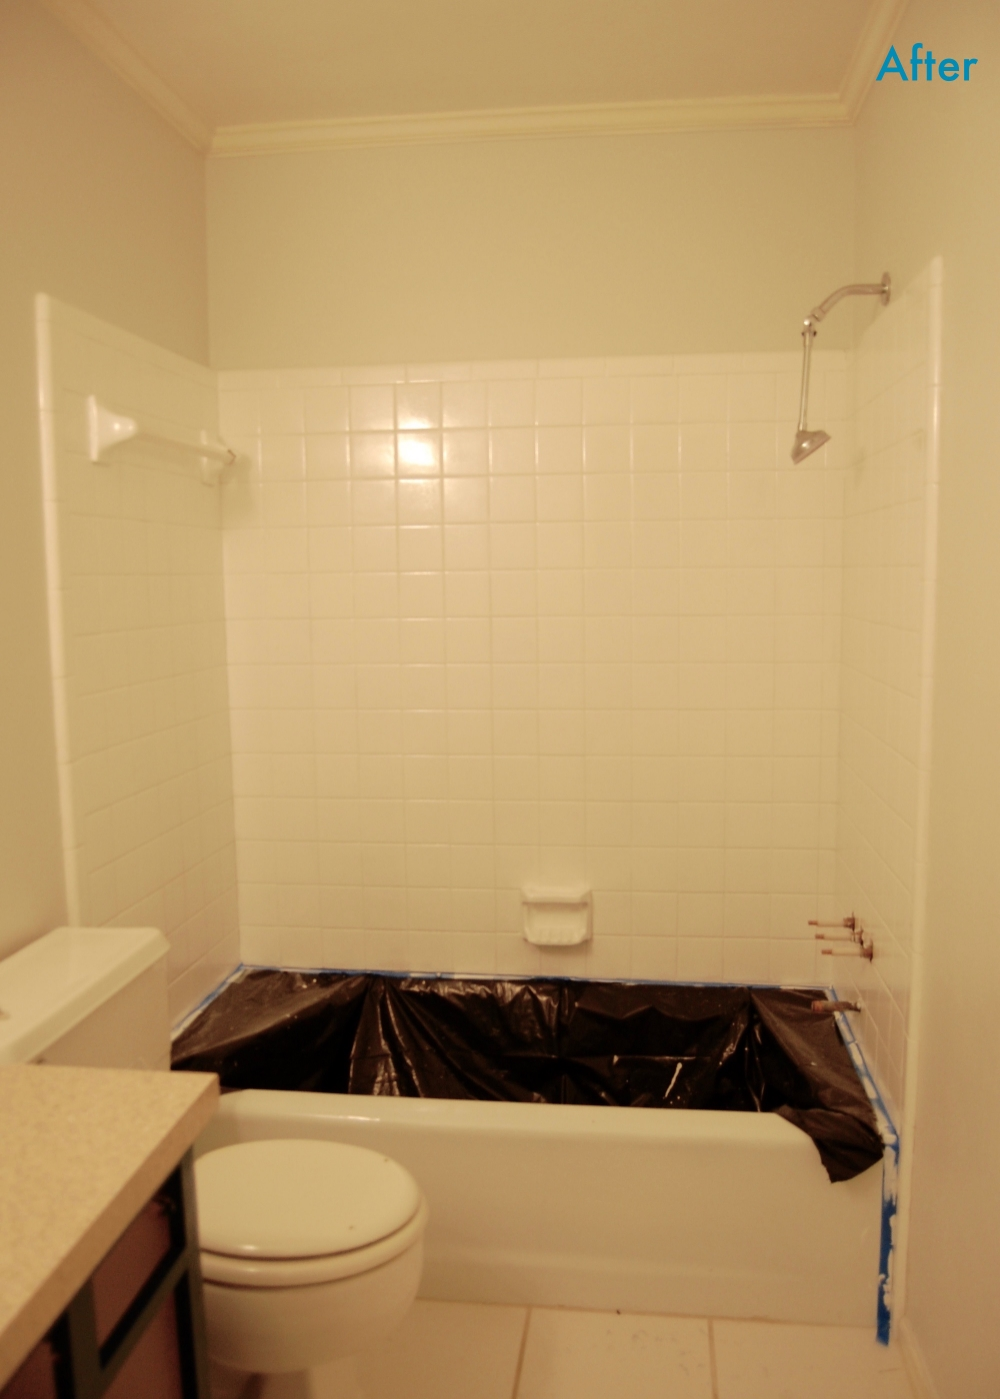 After - Bright White Tile